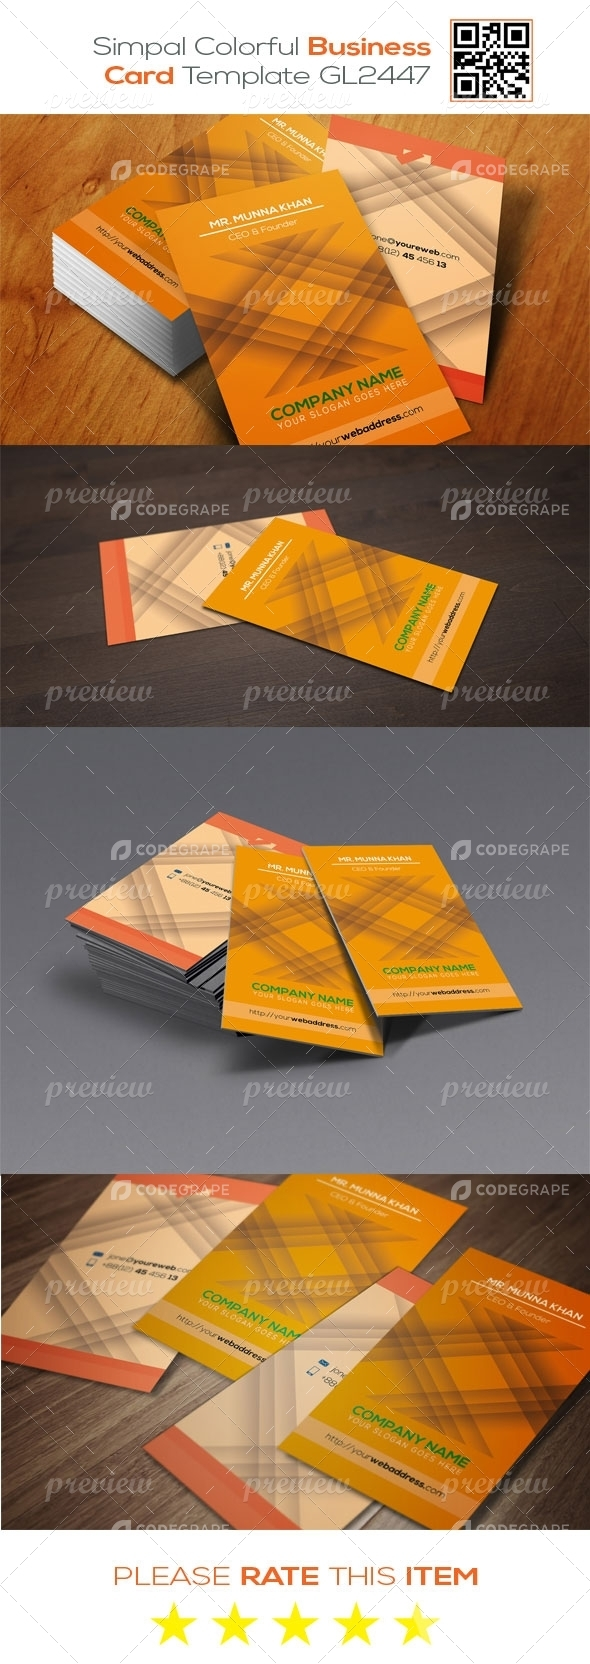 Simpal Colorful Business Card Template GL2447